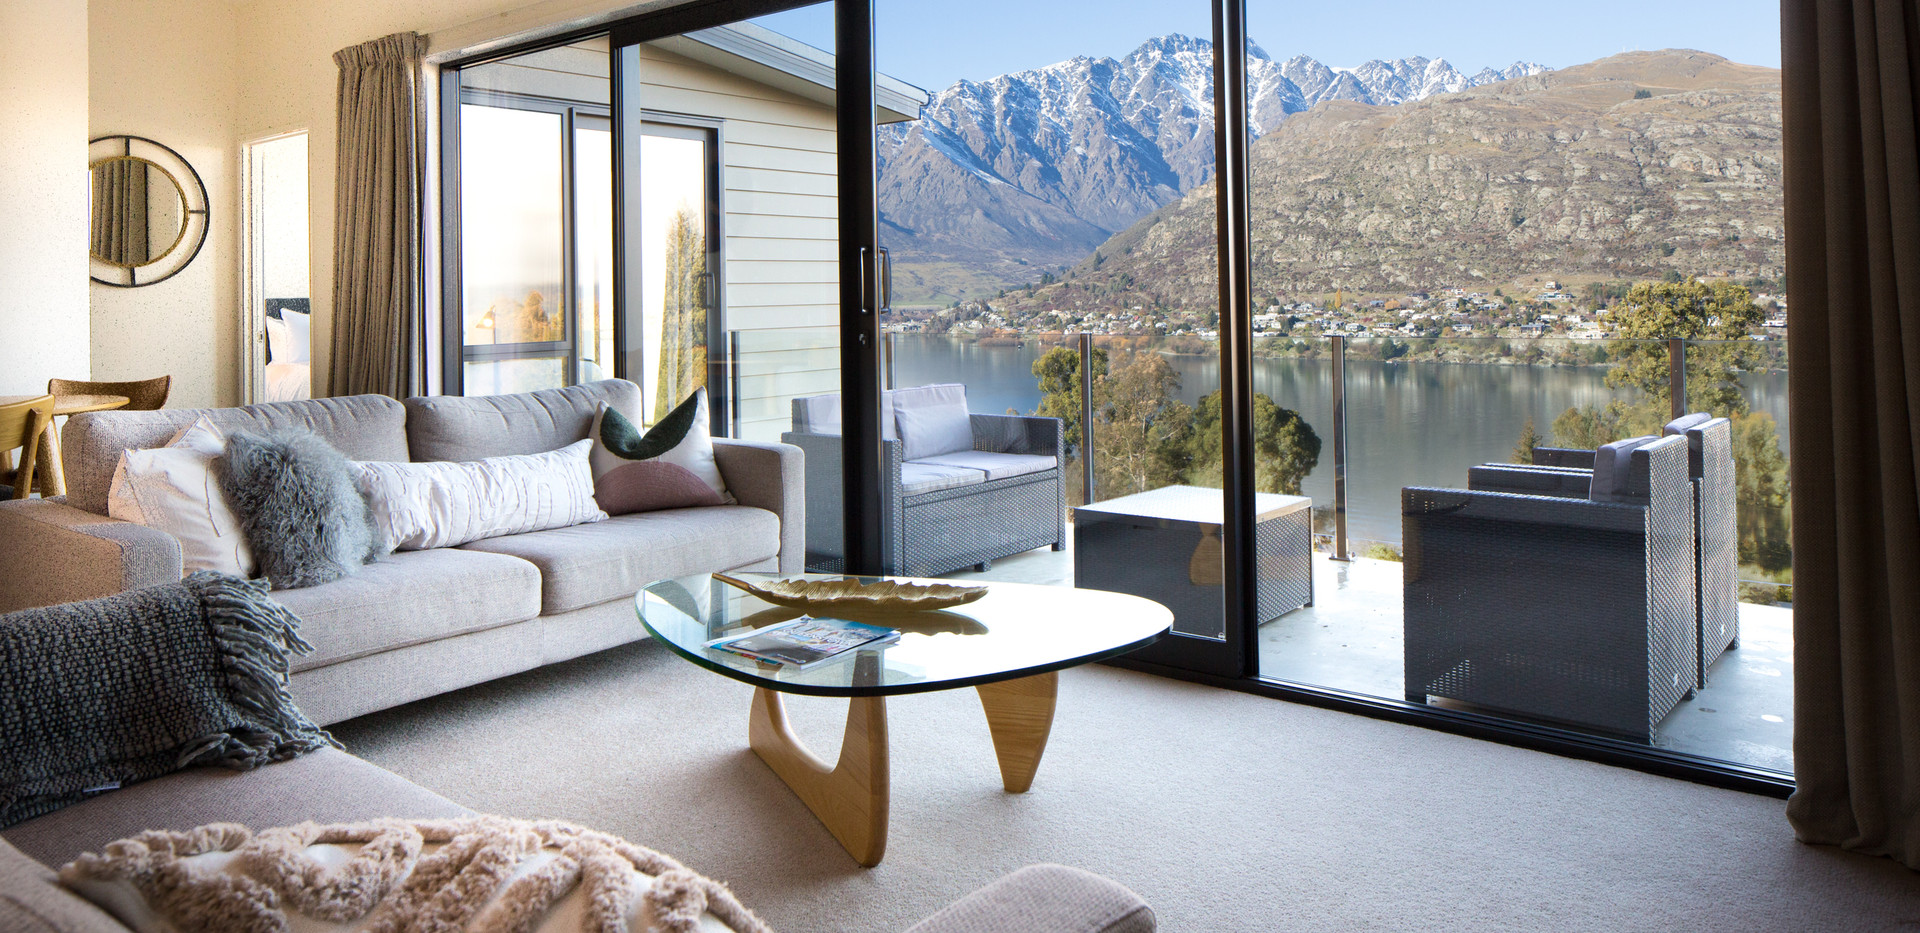 Goldrush 2 Bedroom Apartment, Queenstown Stays